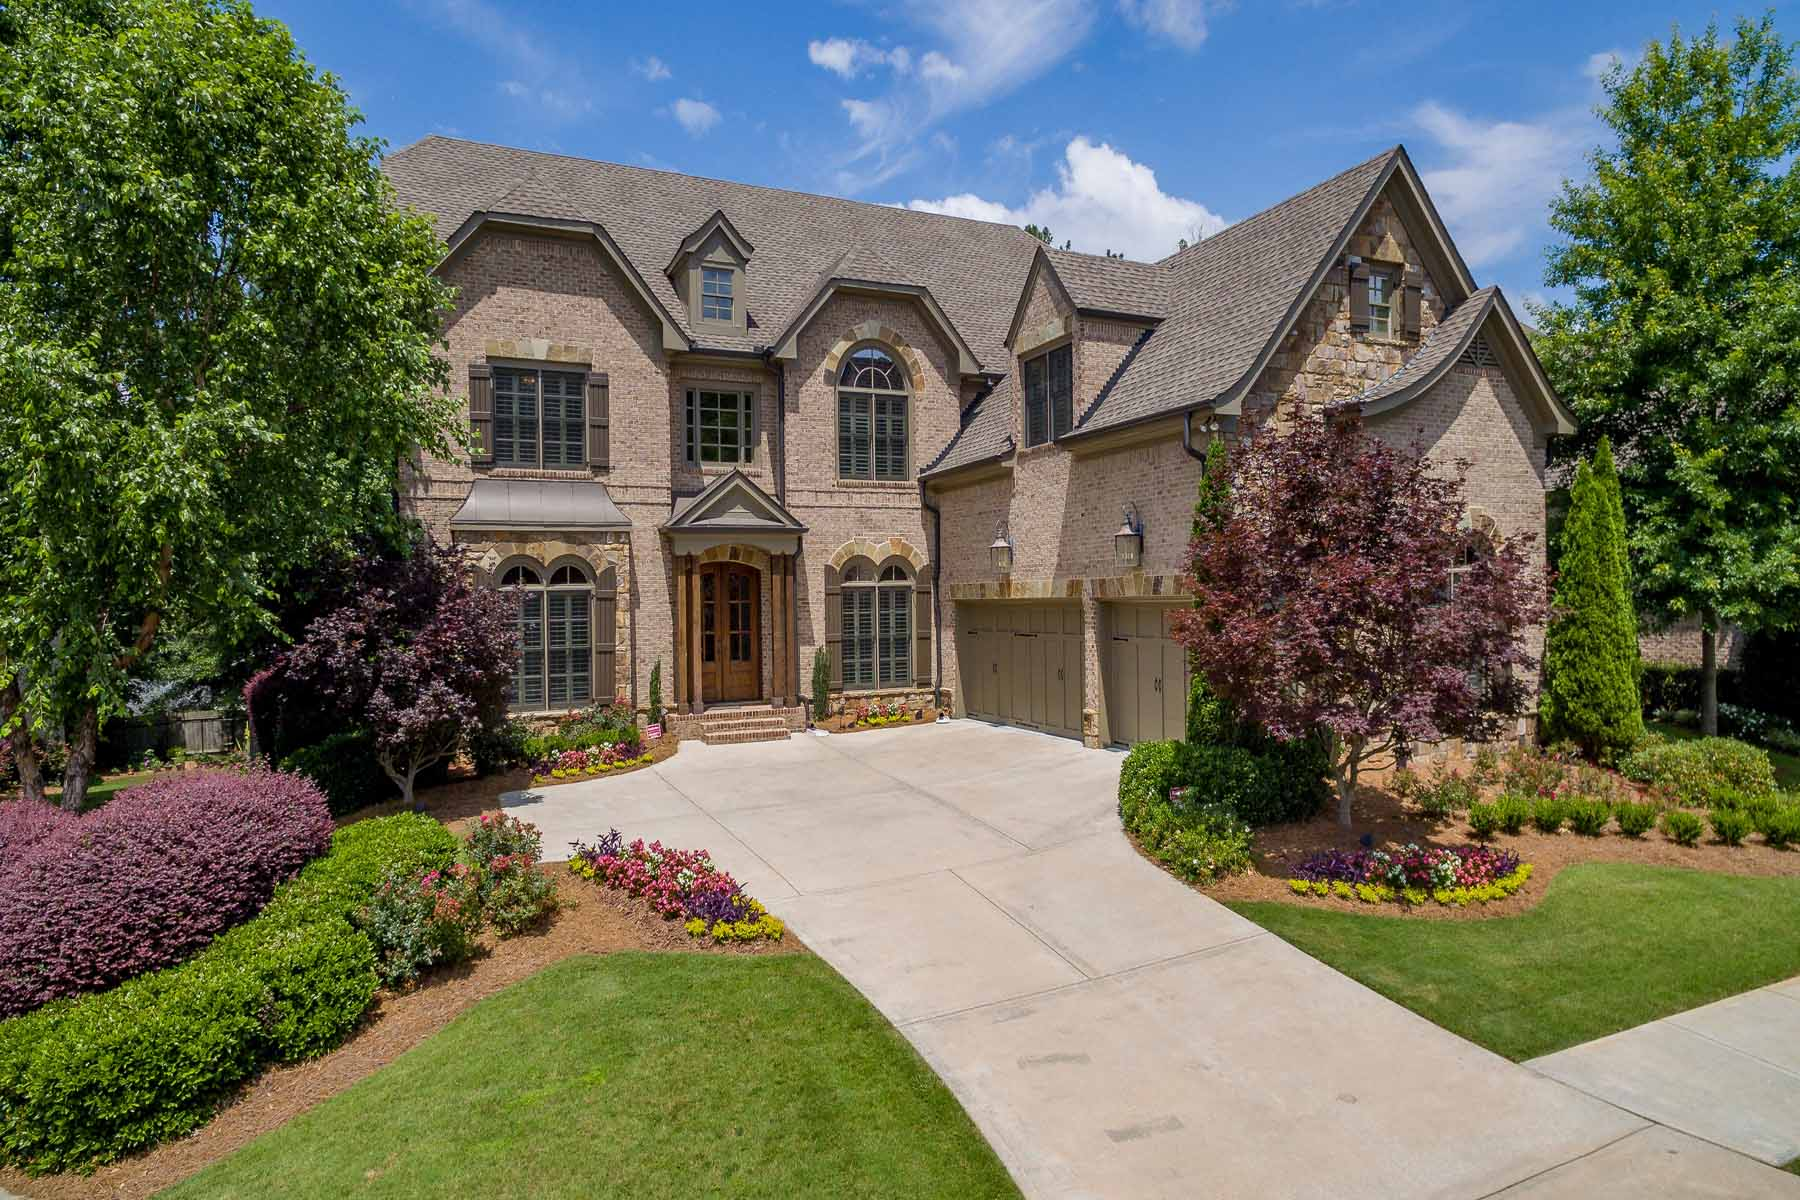 Single Family Home for Sale at Luxurious Living Near Downtown Roswell 160 Stonewyck Place Roswell, Georgia, 30076 United States